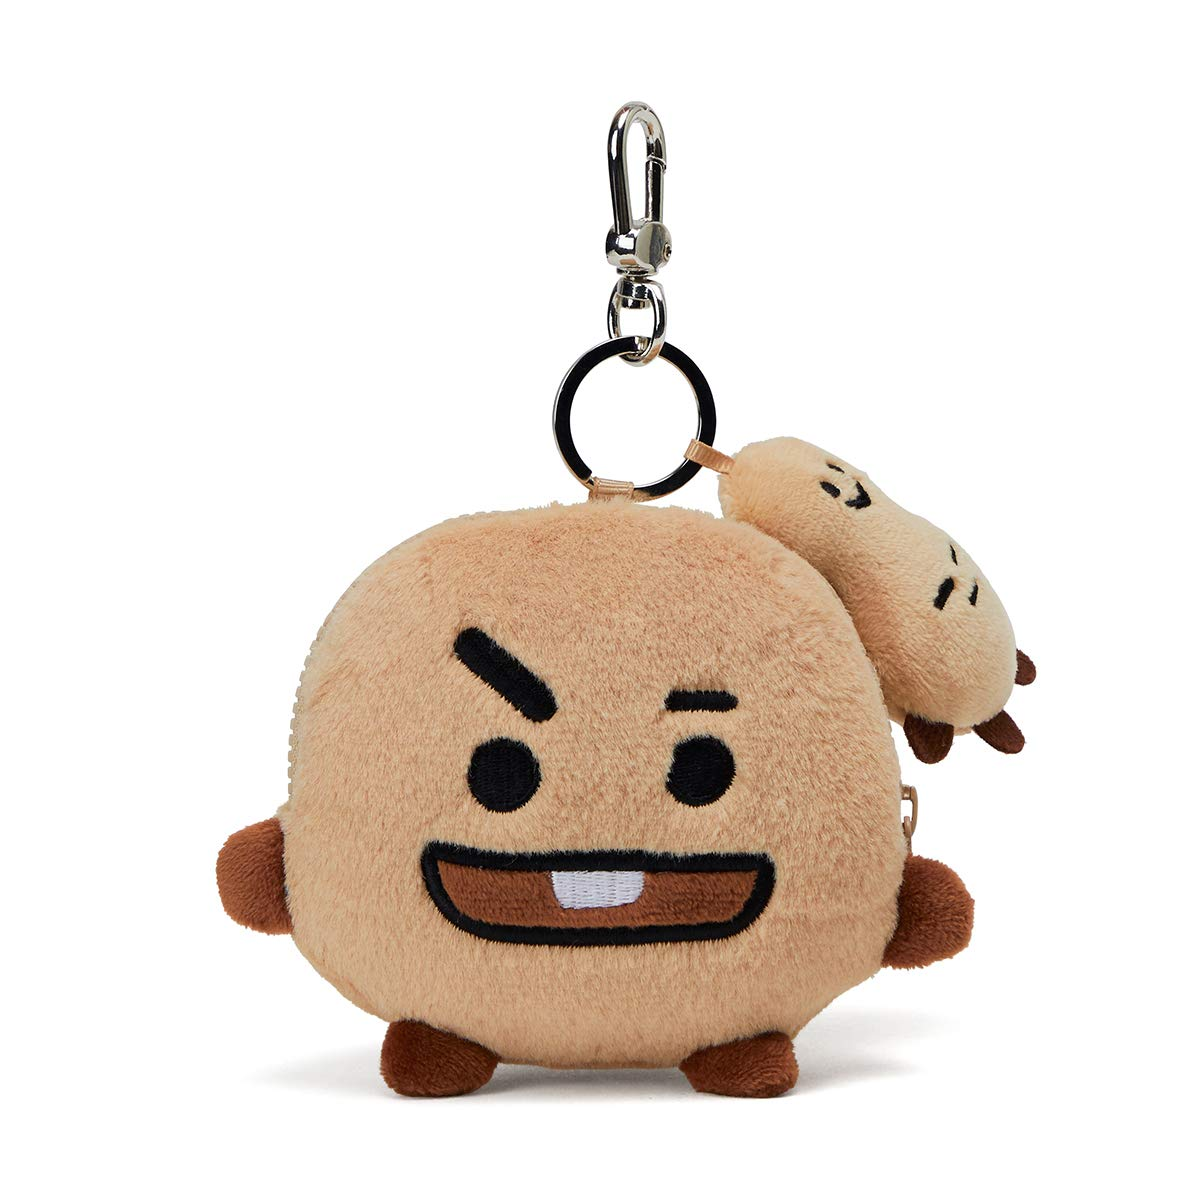 BT21 Official Merchandise by Line Friends - SHOOKY Character Keychain Coin Purse Bag Charm, Brown